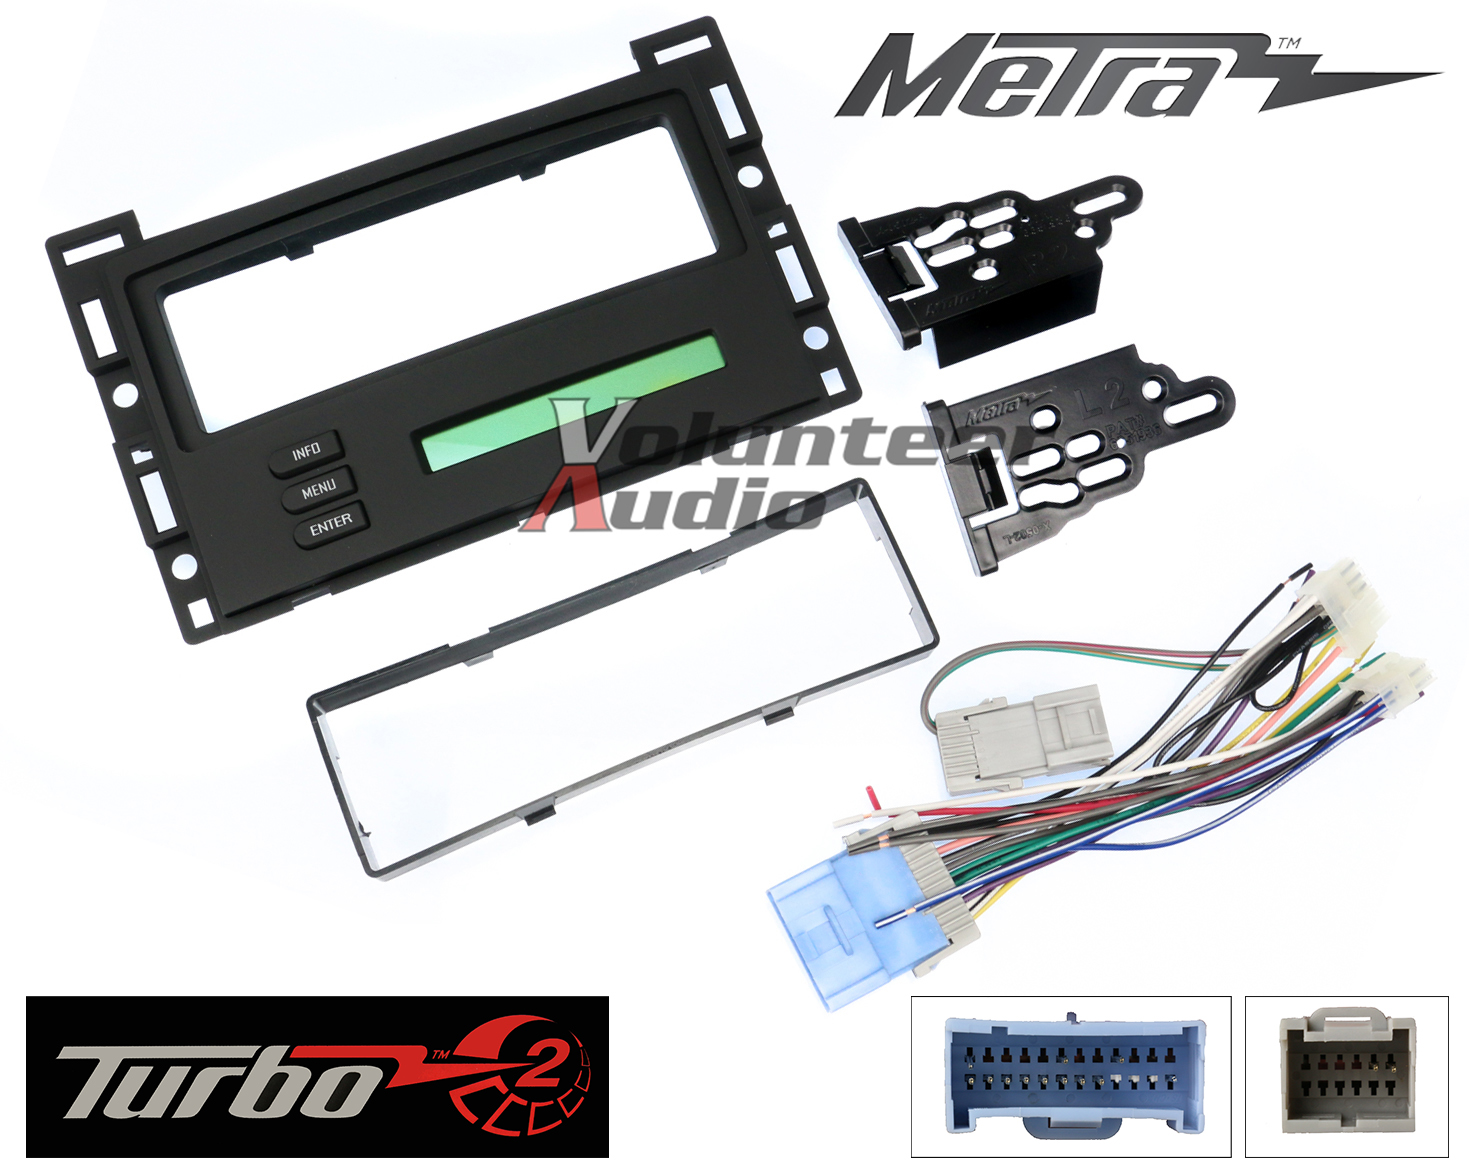 99 3303 marked1 metra 99 3303 single din stereo dash kit for chevy malibu cobalt metra 99-3303 wiring harness at nearapp.co